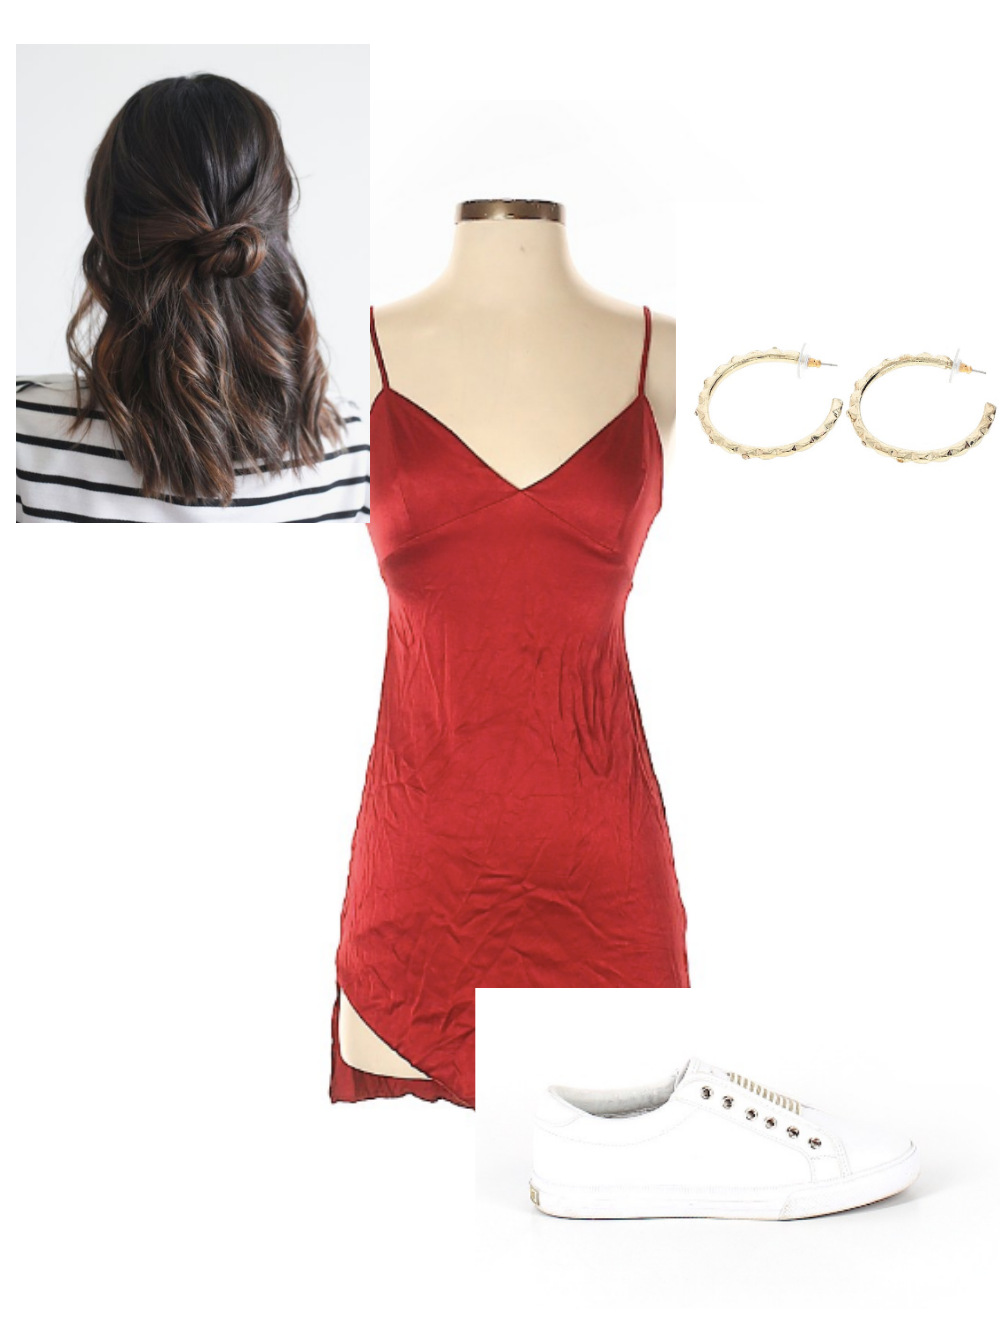 Red slip dress, white sneakers, golden hoops, half updo look 2 for red mini dress fourth of july looks